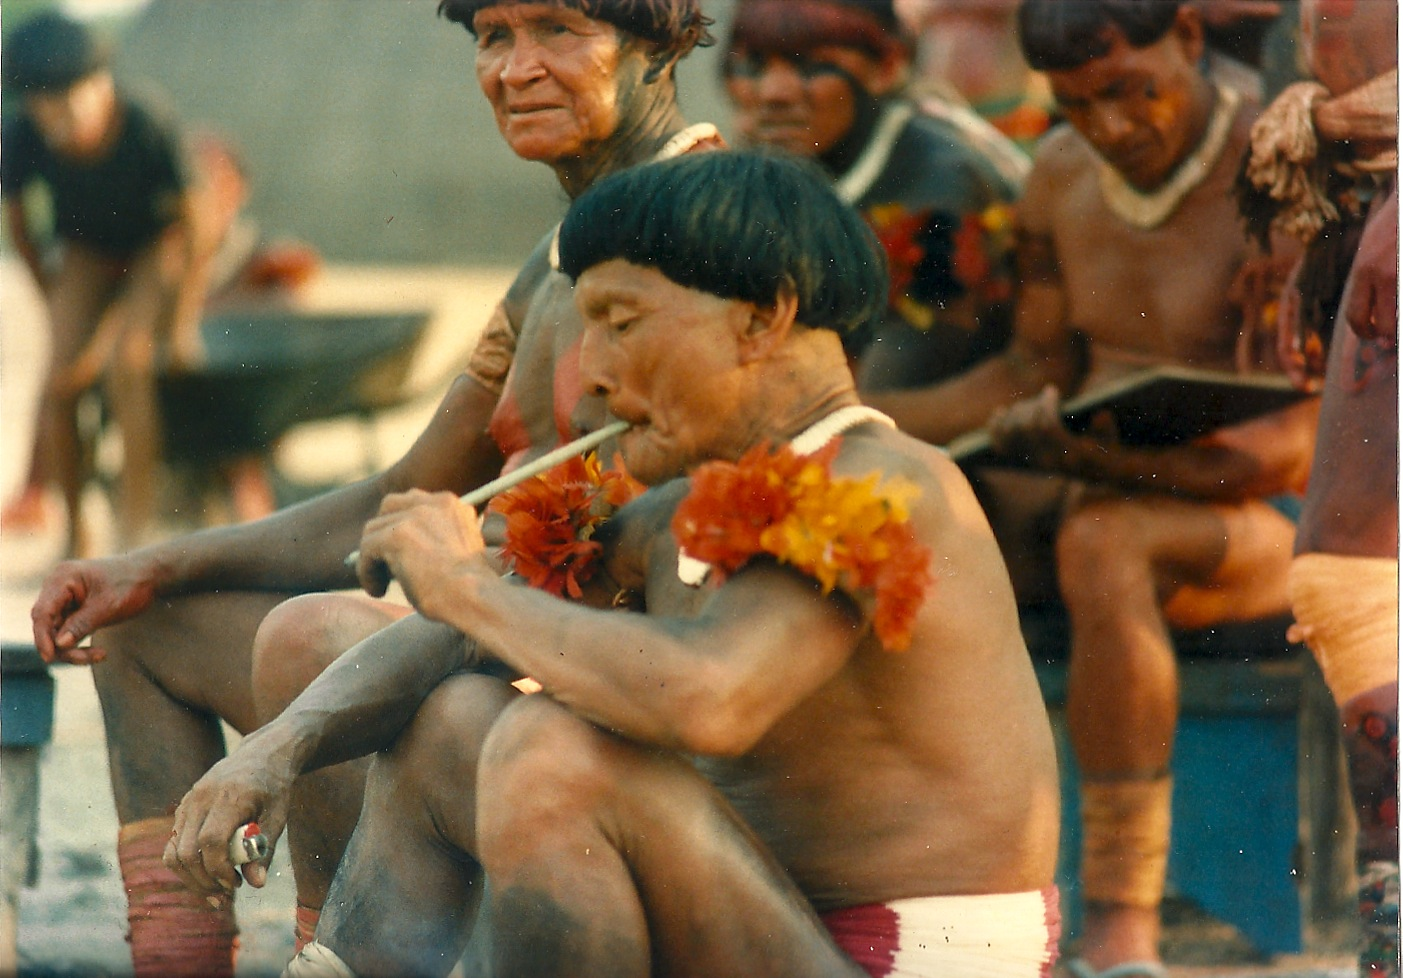 A group of indigenous people sat together. In the forefront a person is smoking a long cigarette.